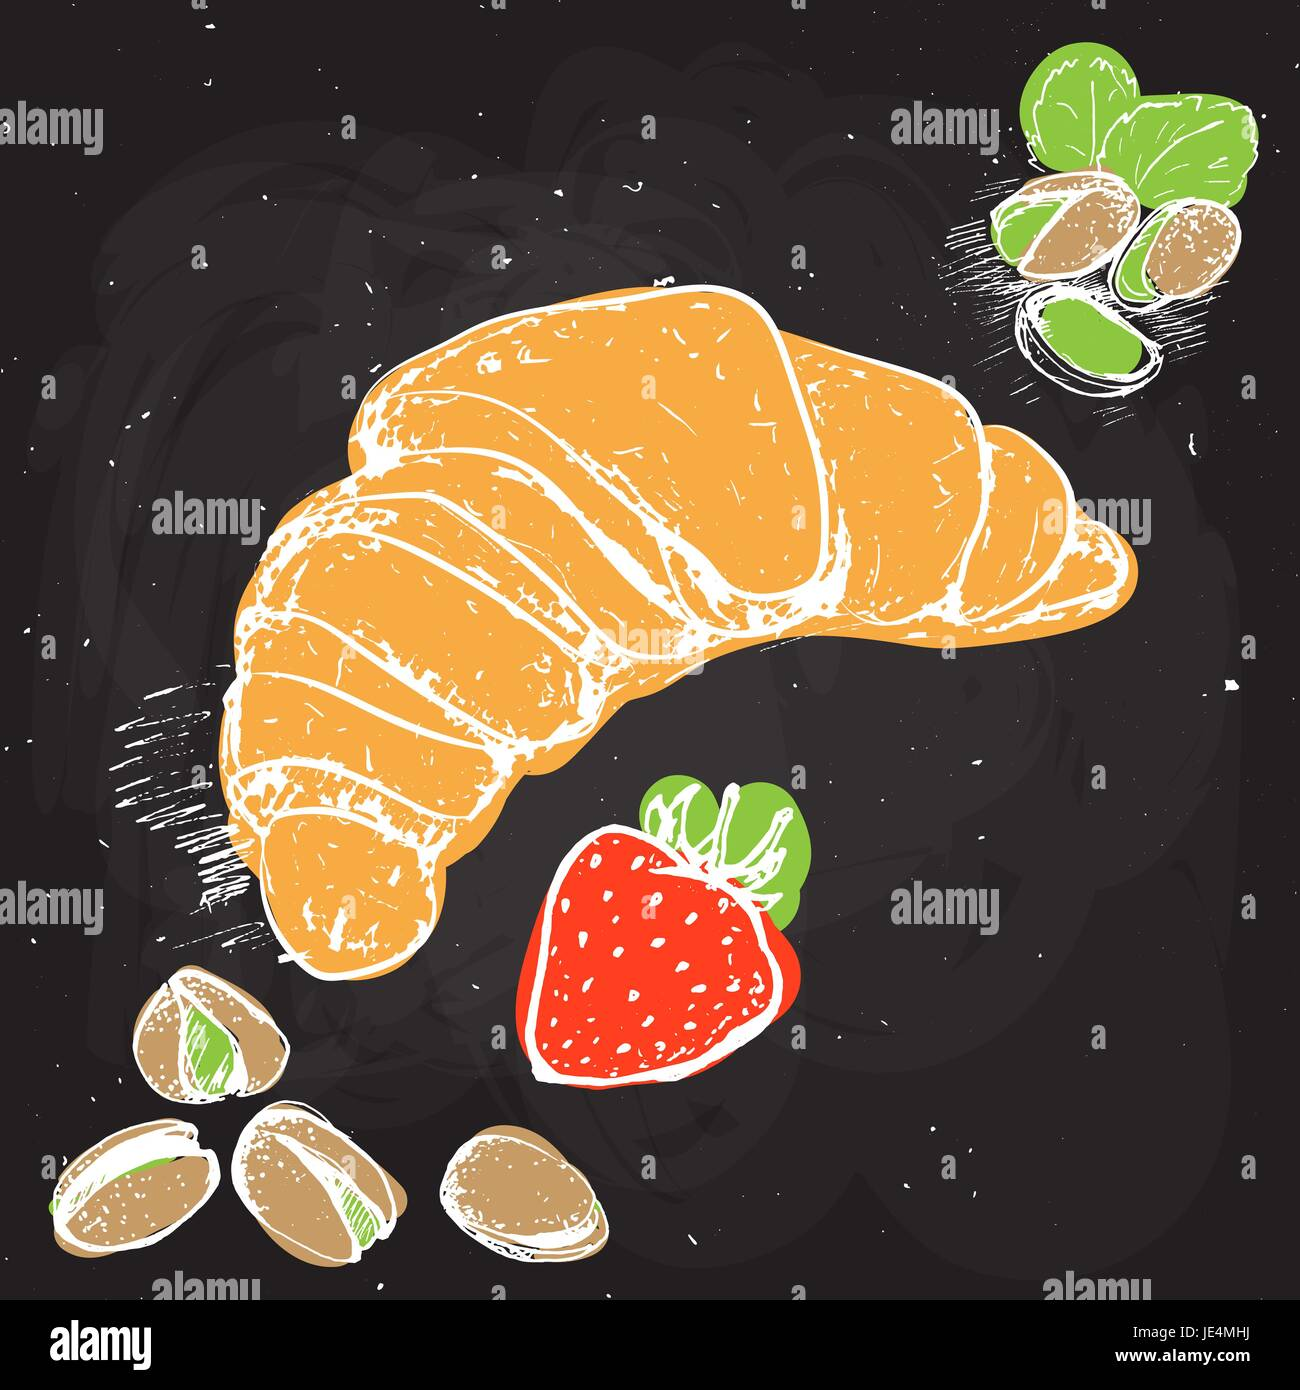 Croissant hand draw vector illustration with pistachio, strawberry. Croissand on black chalk board - Stock Image